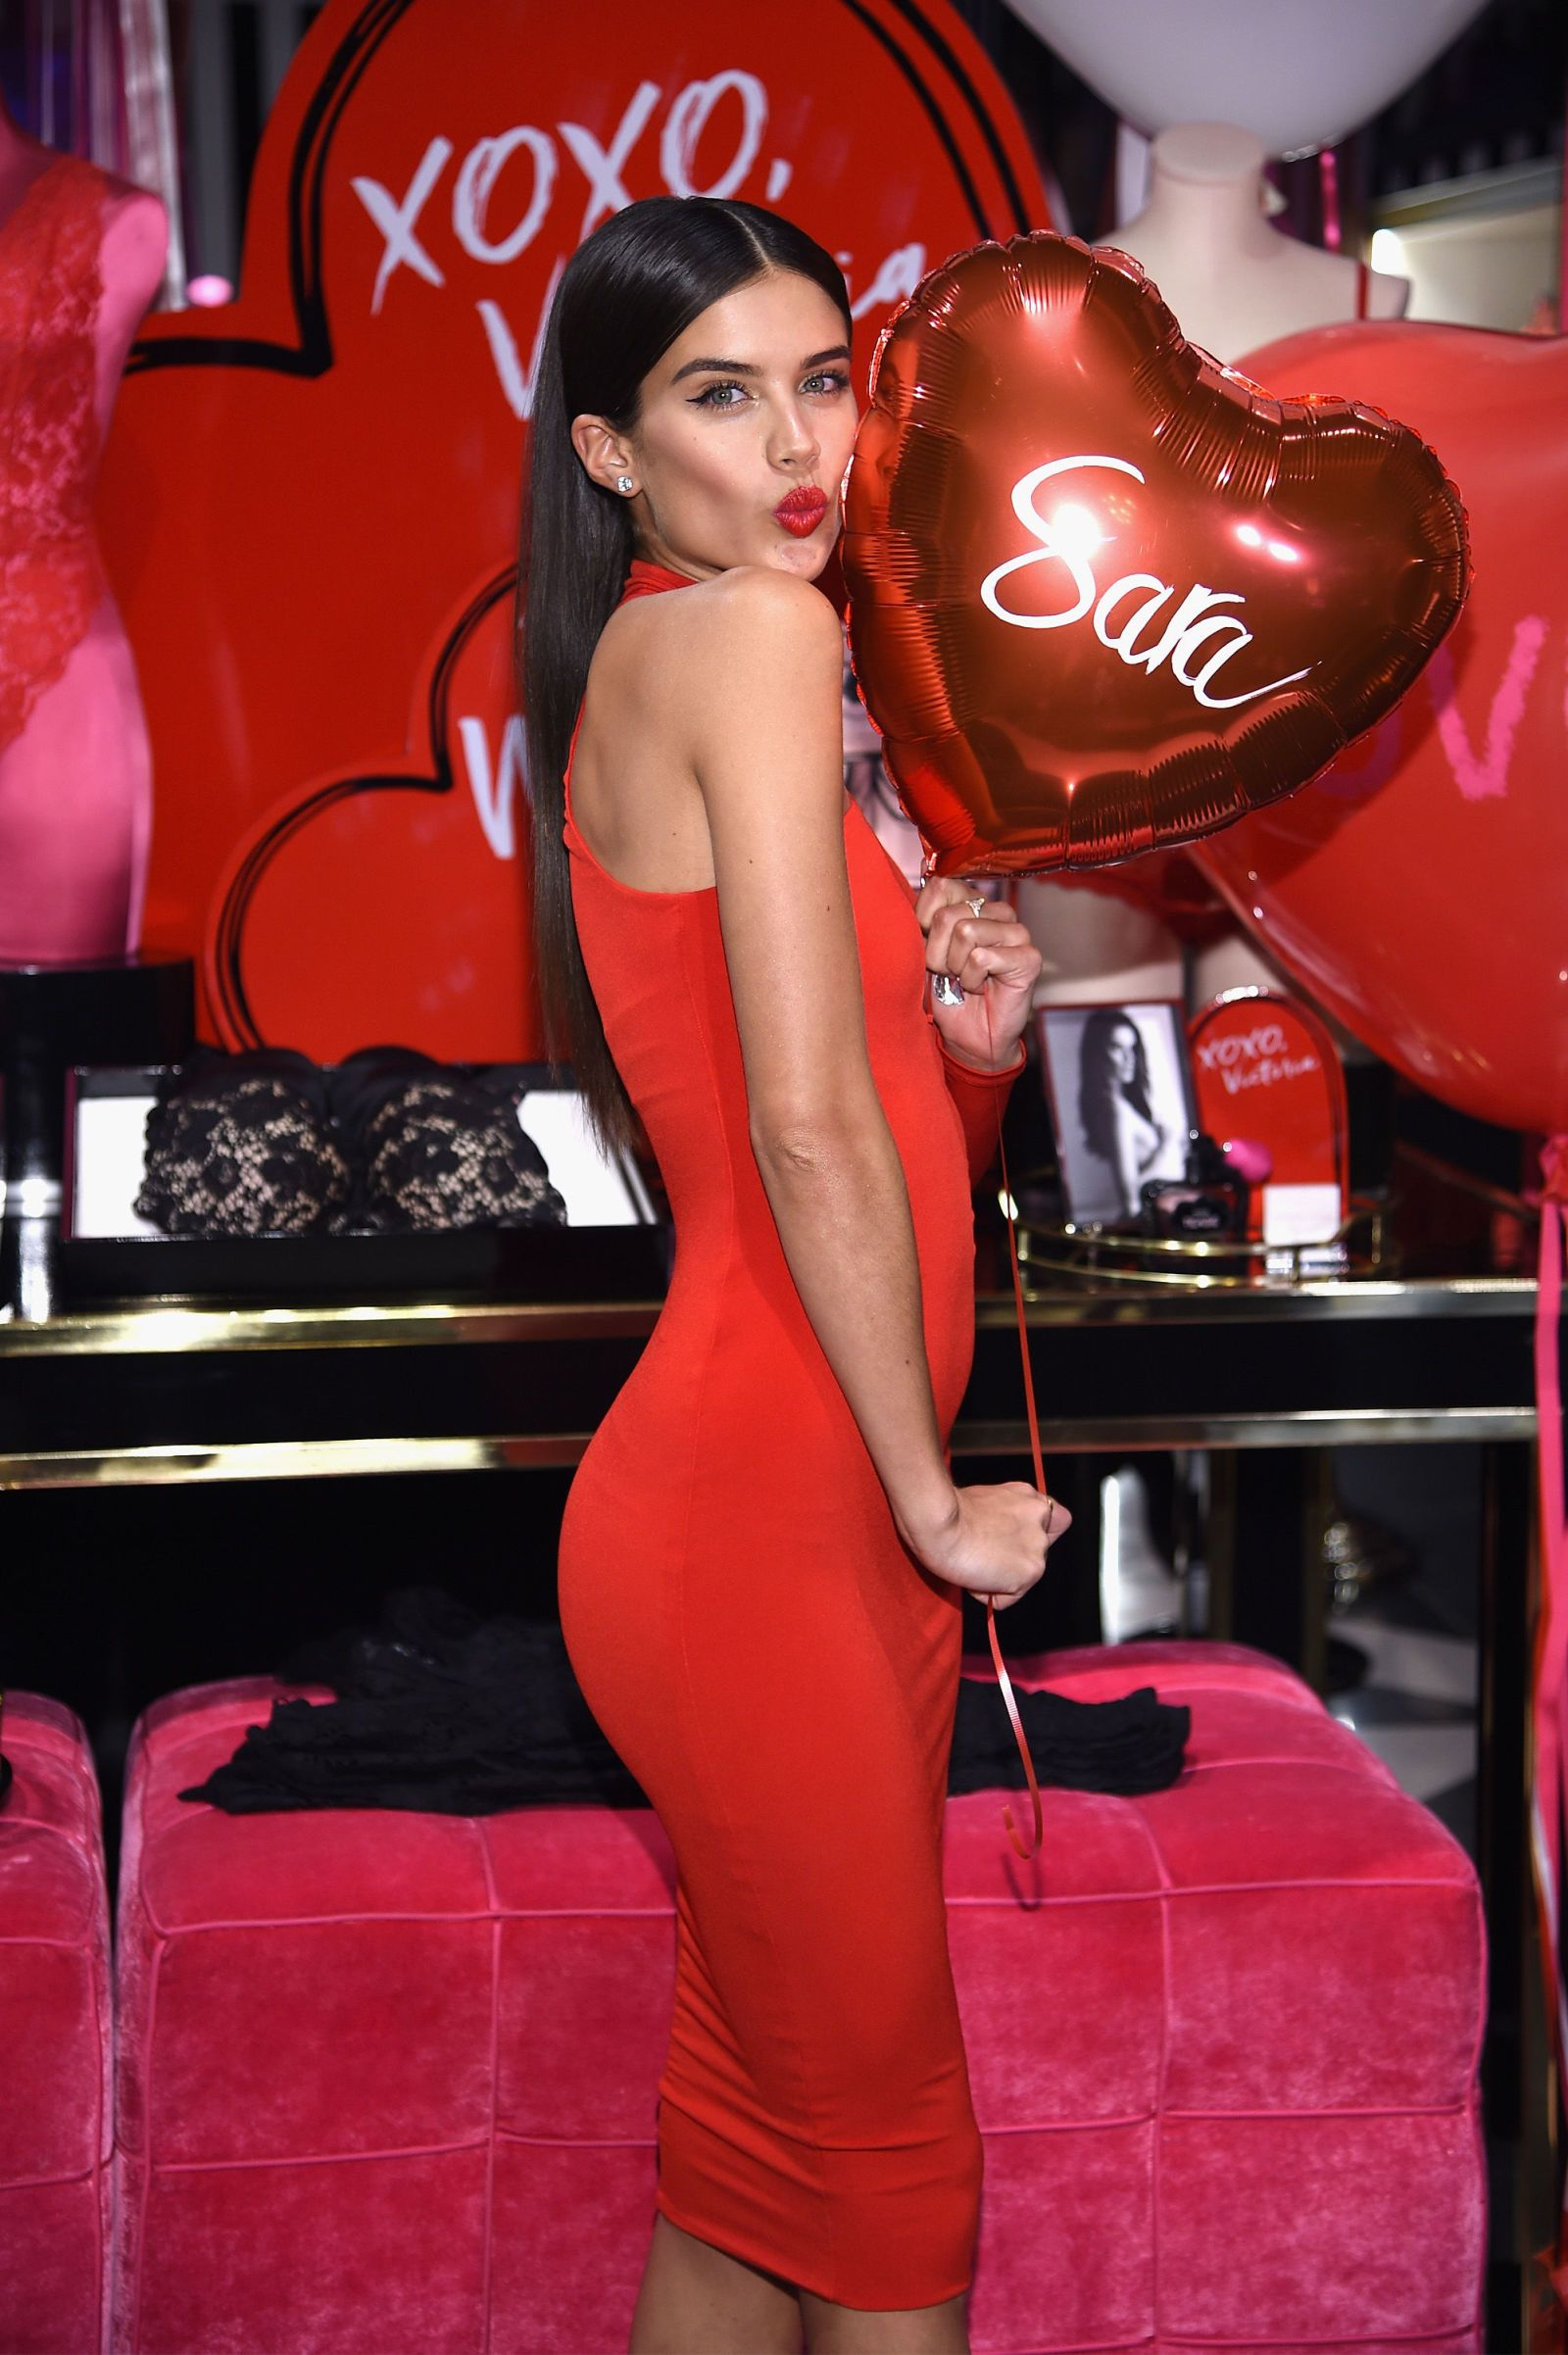 What I Learned When I Went Valentines Day Lingerie